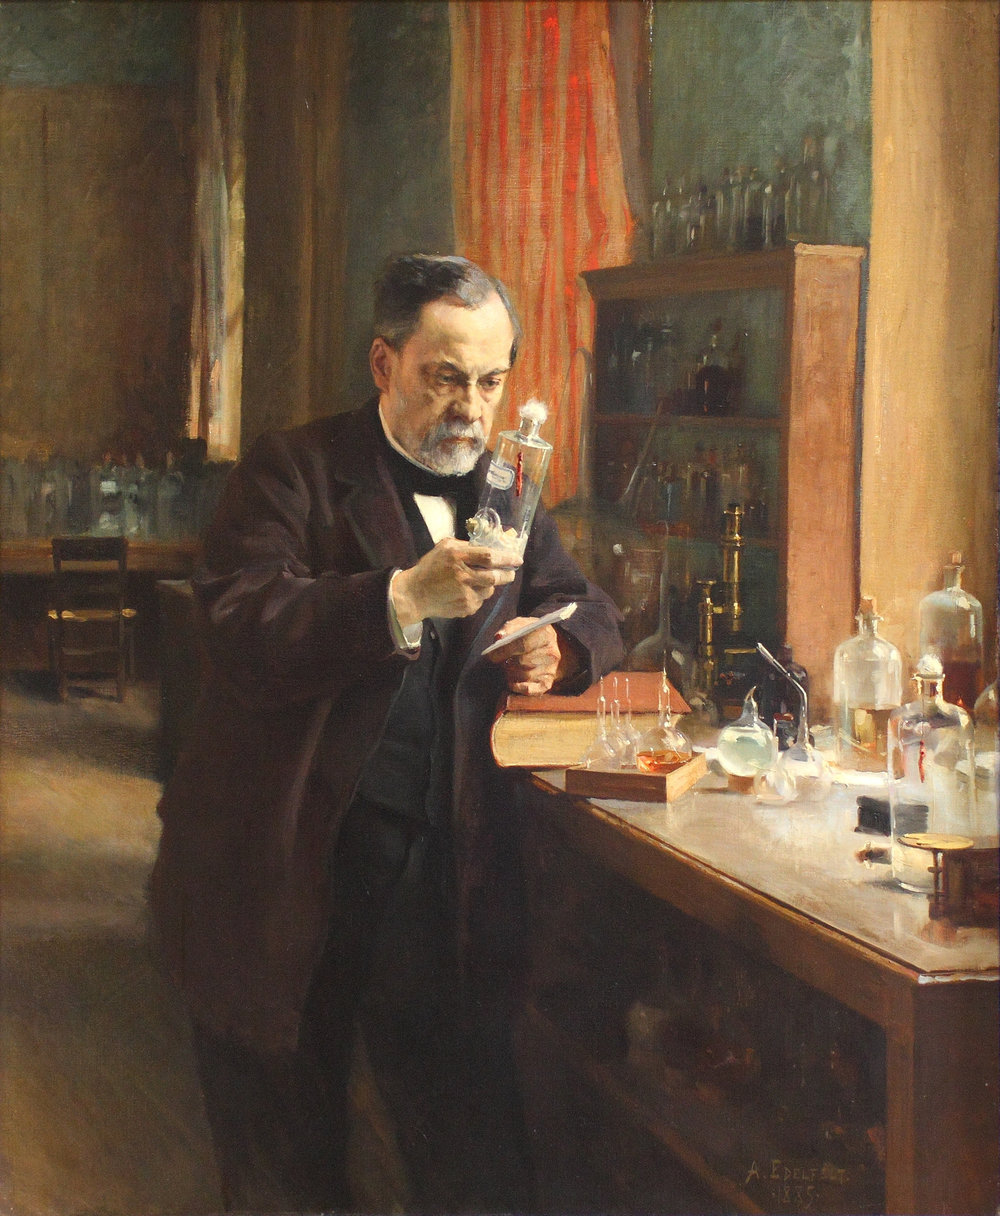 Louis Pasteur in his laboratory. Painting by A. Edelfeldt, 1885